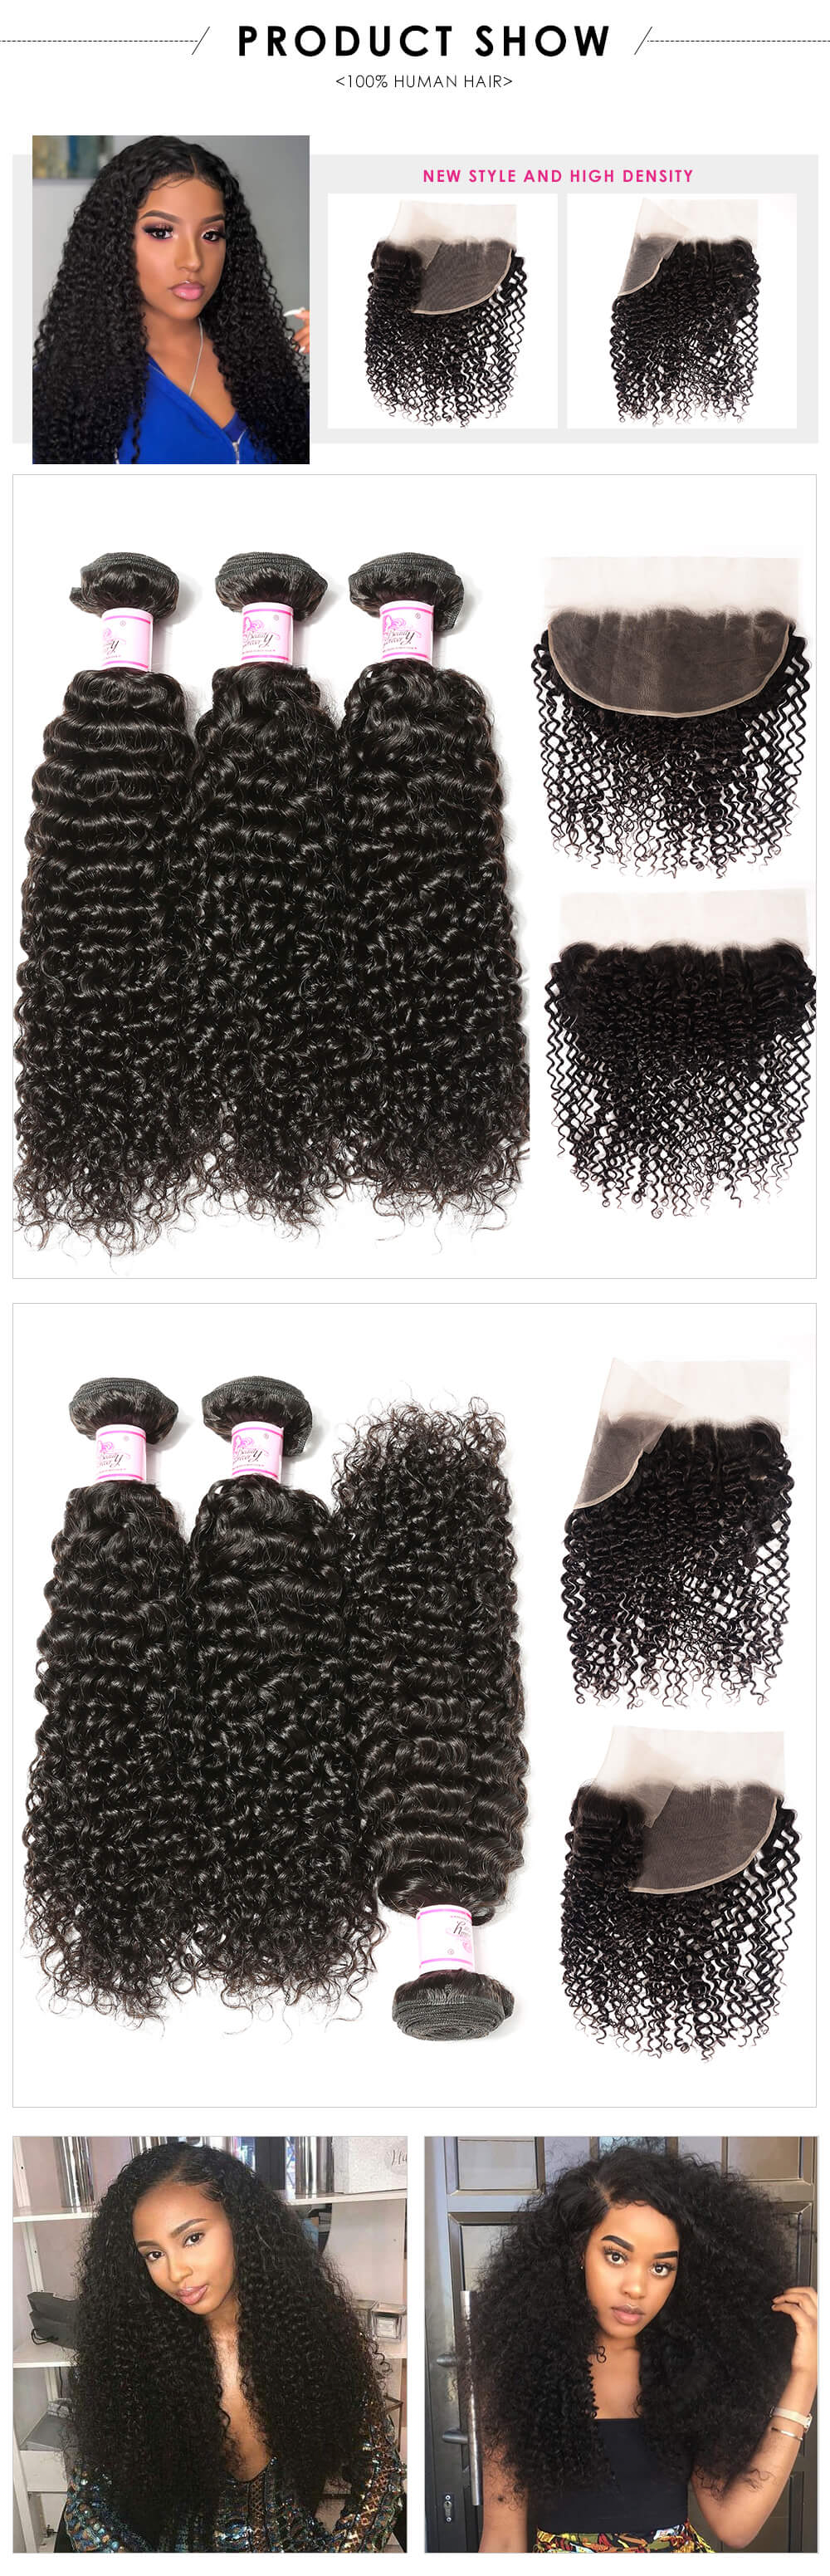 jerry curly 3bundles with closure